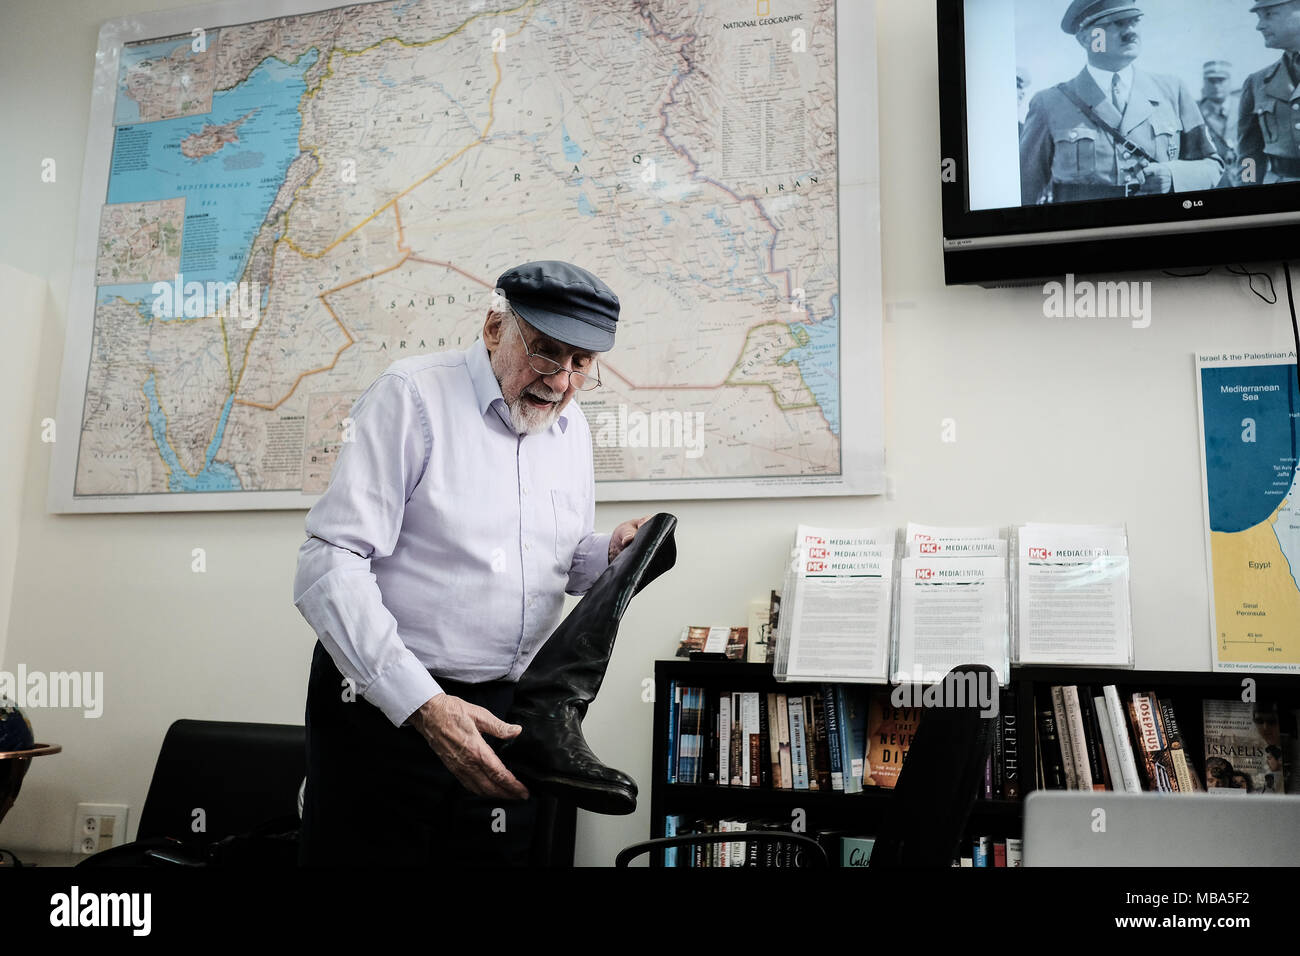 Jerusalem, Israel. 9th April, 2018. Ahead of Israel's Holocaust Martyrs' and Heroes' Remembrance Day, WALTER BINGHAM, 94, speaks of his wartime experiences. Born Wolfgang Billig, recipient of the Guinness World Record for the oldest radio talk show host, Bingham was born and grew up in Germany as the Nazis were rising to power. As a child he witnessed Nazi book burnings and severe discrimination before escaping to England on the Kindertransport. Credit: Nir Alon/Alamy Live News - Stock Image